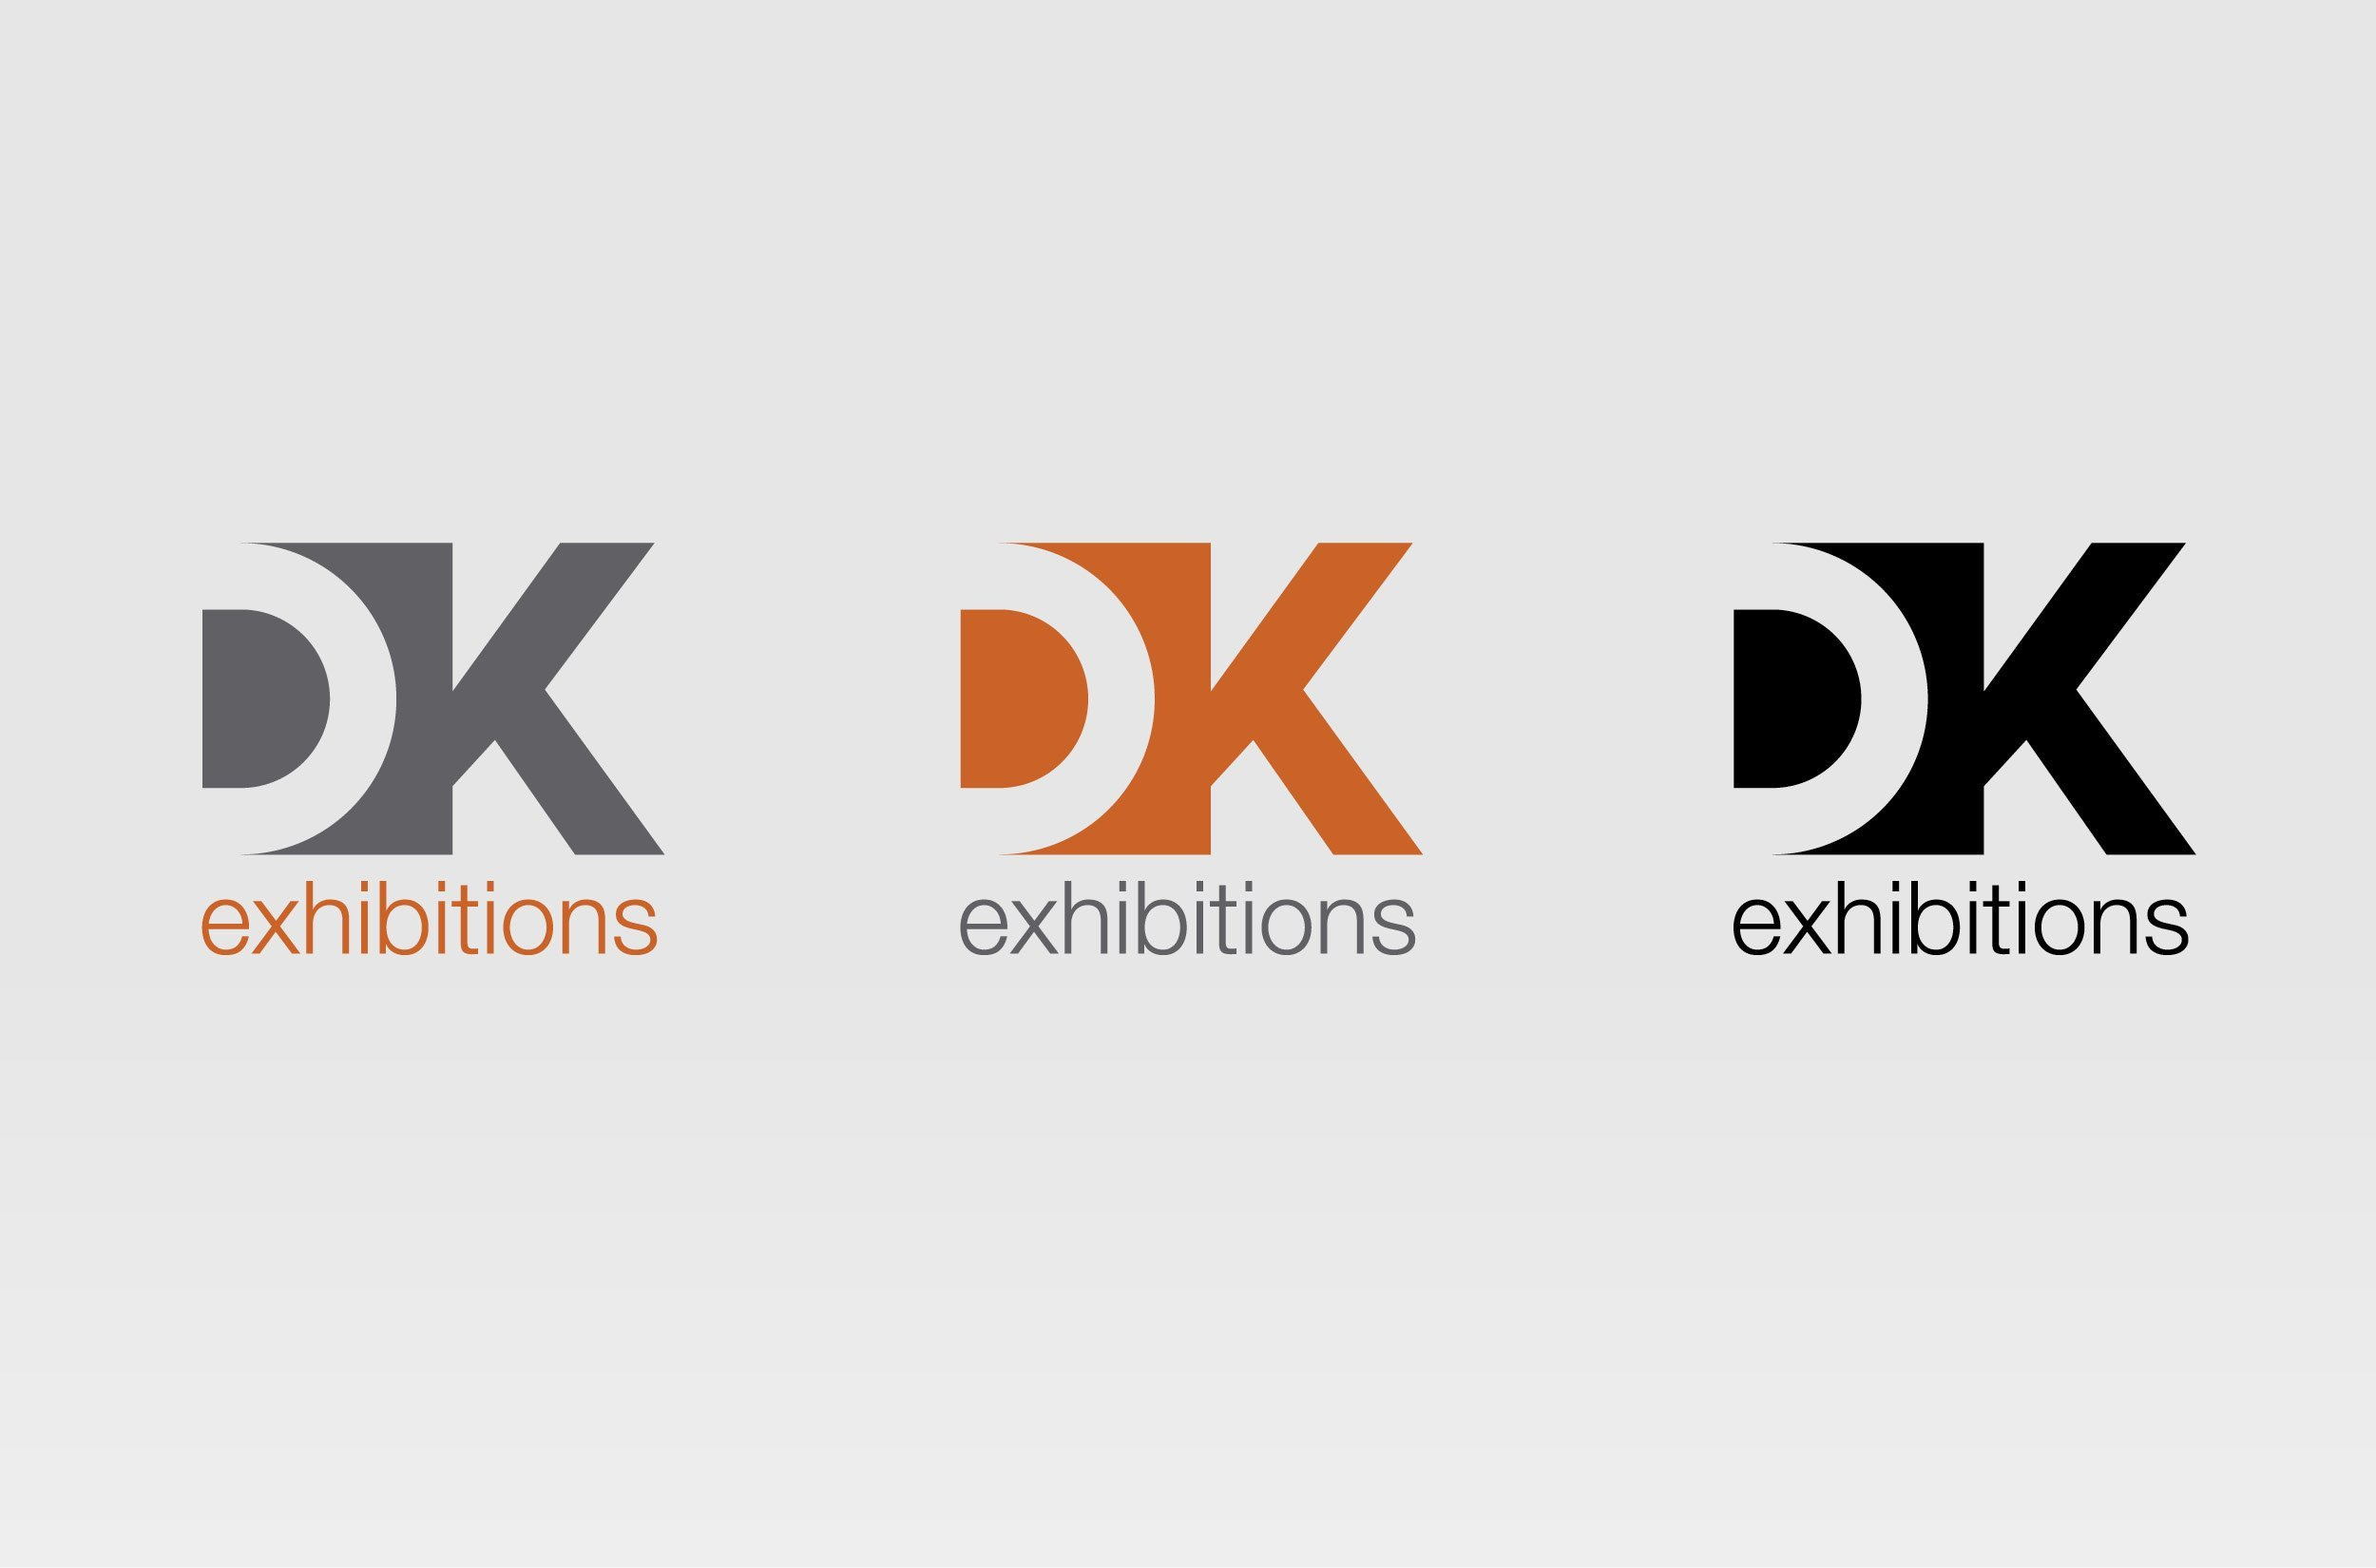 DK exhibitions logo colourways